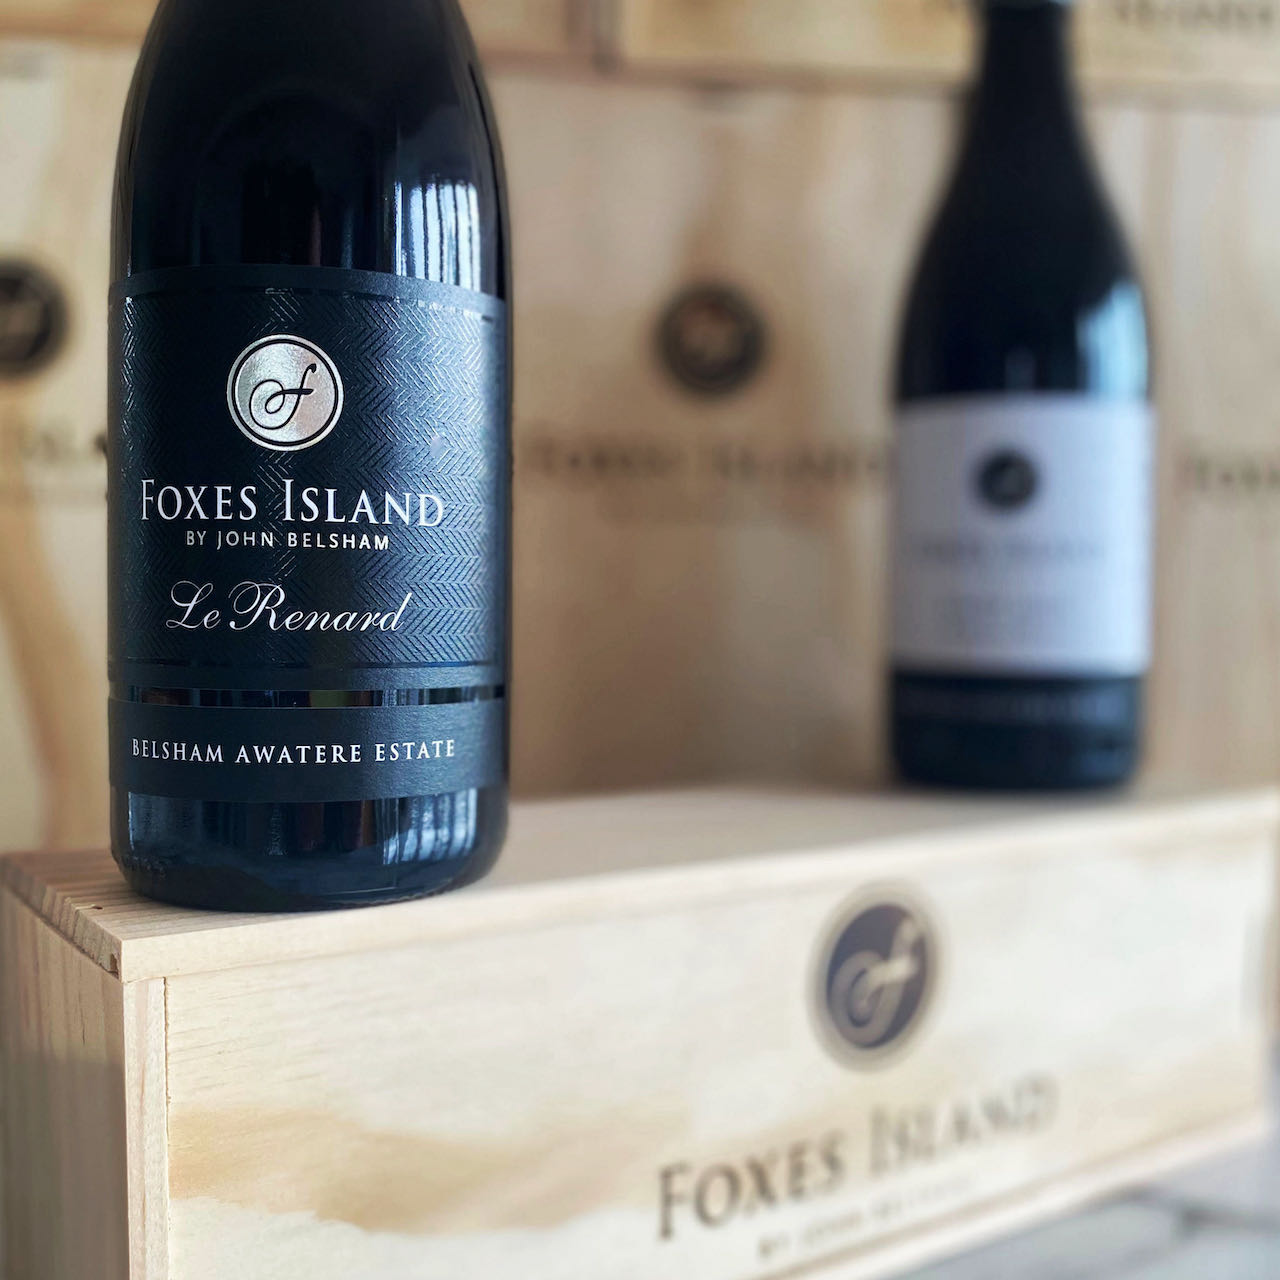 Foxes Island Pinot Noir in a wood box